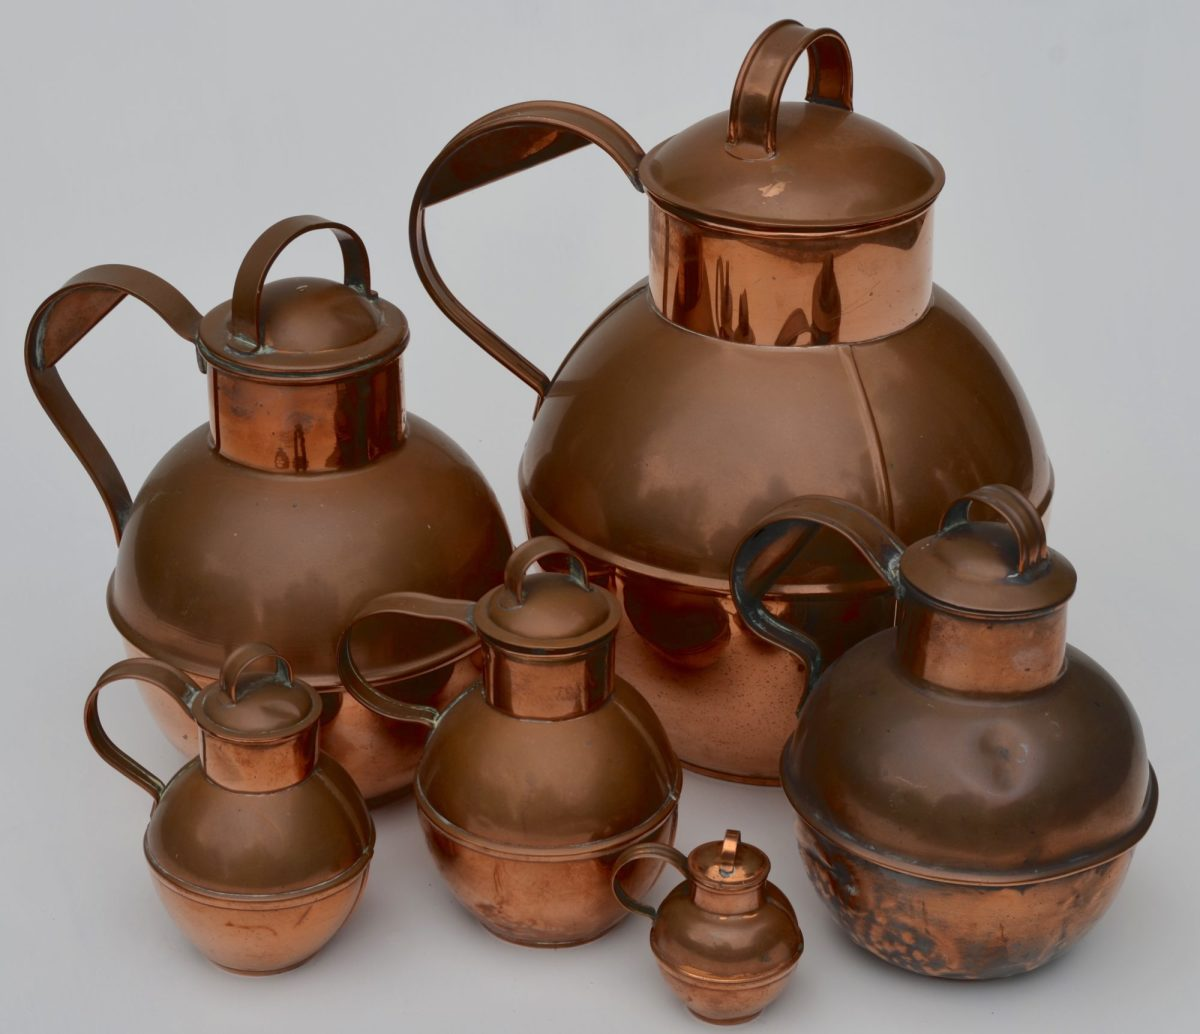 Guernsey milk pots. Guernsey is one of the Channel Islands just off the northern coast of France. These containers have been made in this same design for over 1,000 years. The examples here range in volume from one gallon to an eighth of a pint.